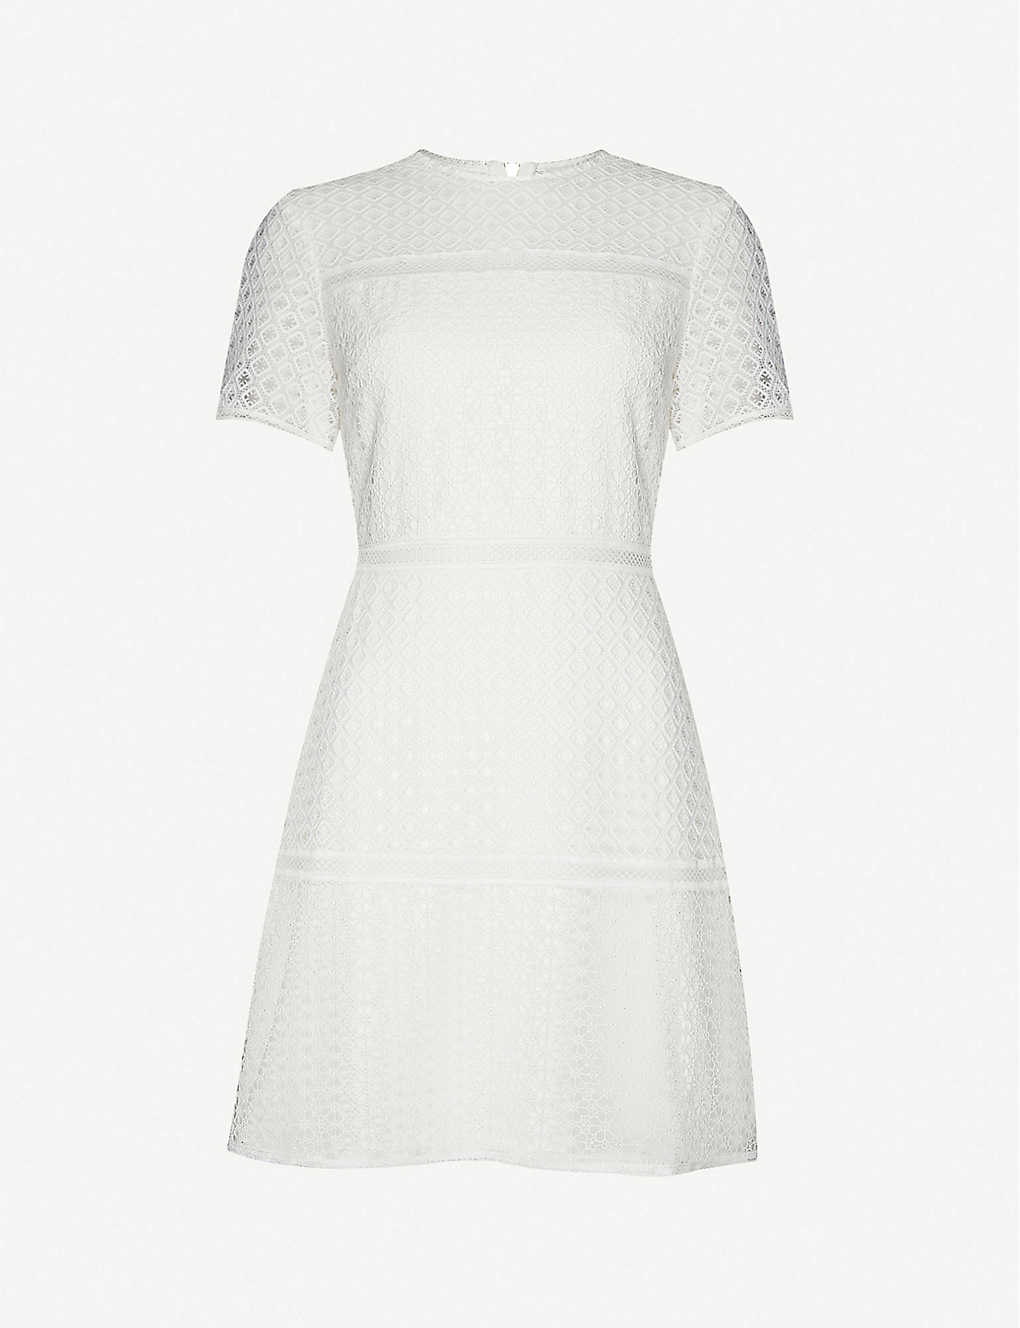 TED BAKER: A-line lace mini dress